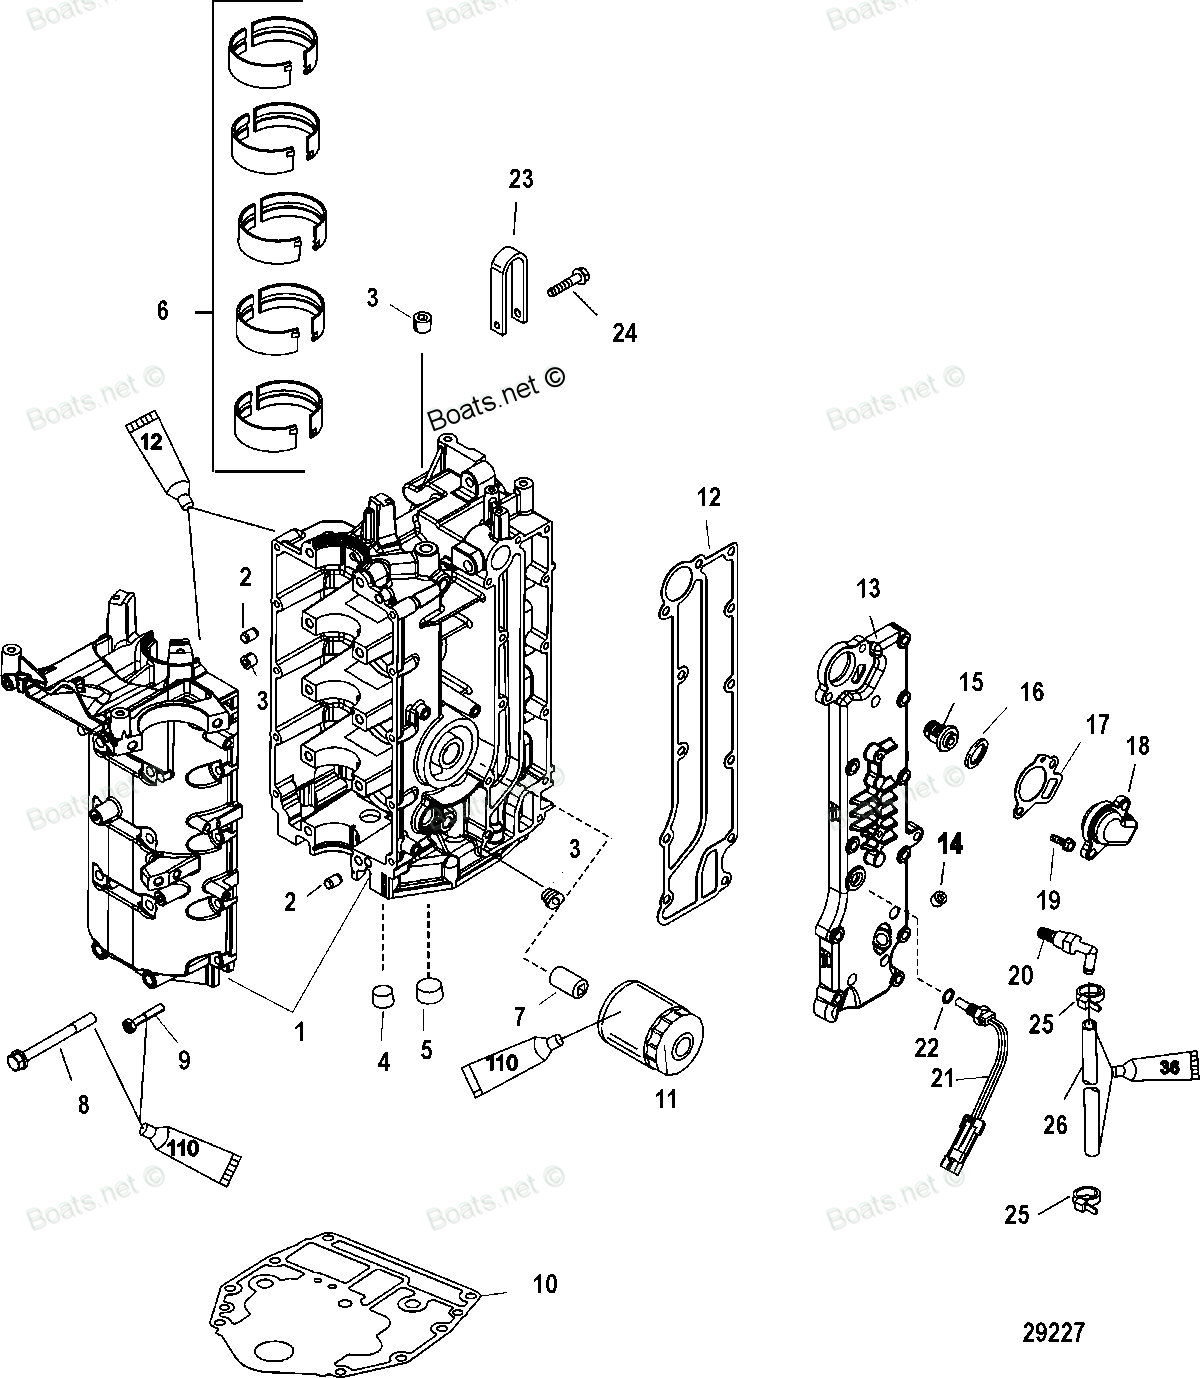 Diagram of 40 EFI (4 CYL.)(4-STROKE) Mercury Outboard 1C050252 & Up Cylinder Block and Crankcase Diagram and Parts